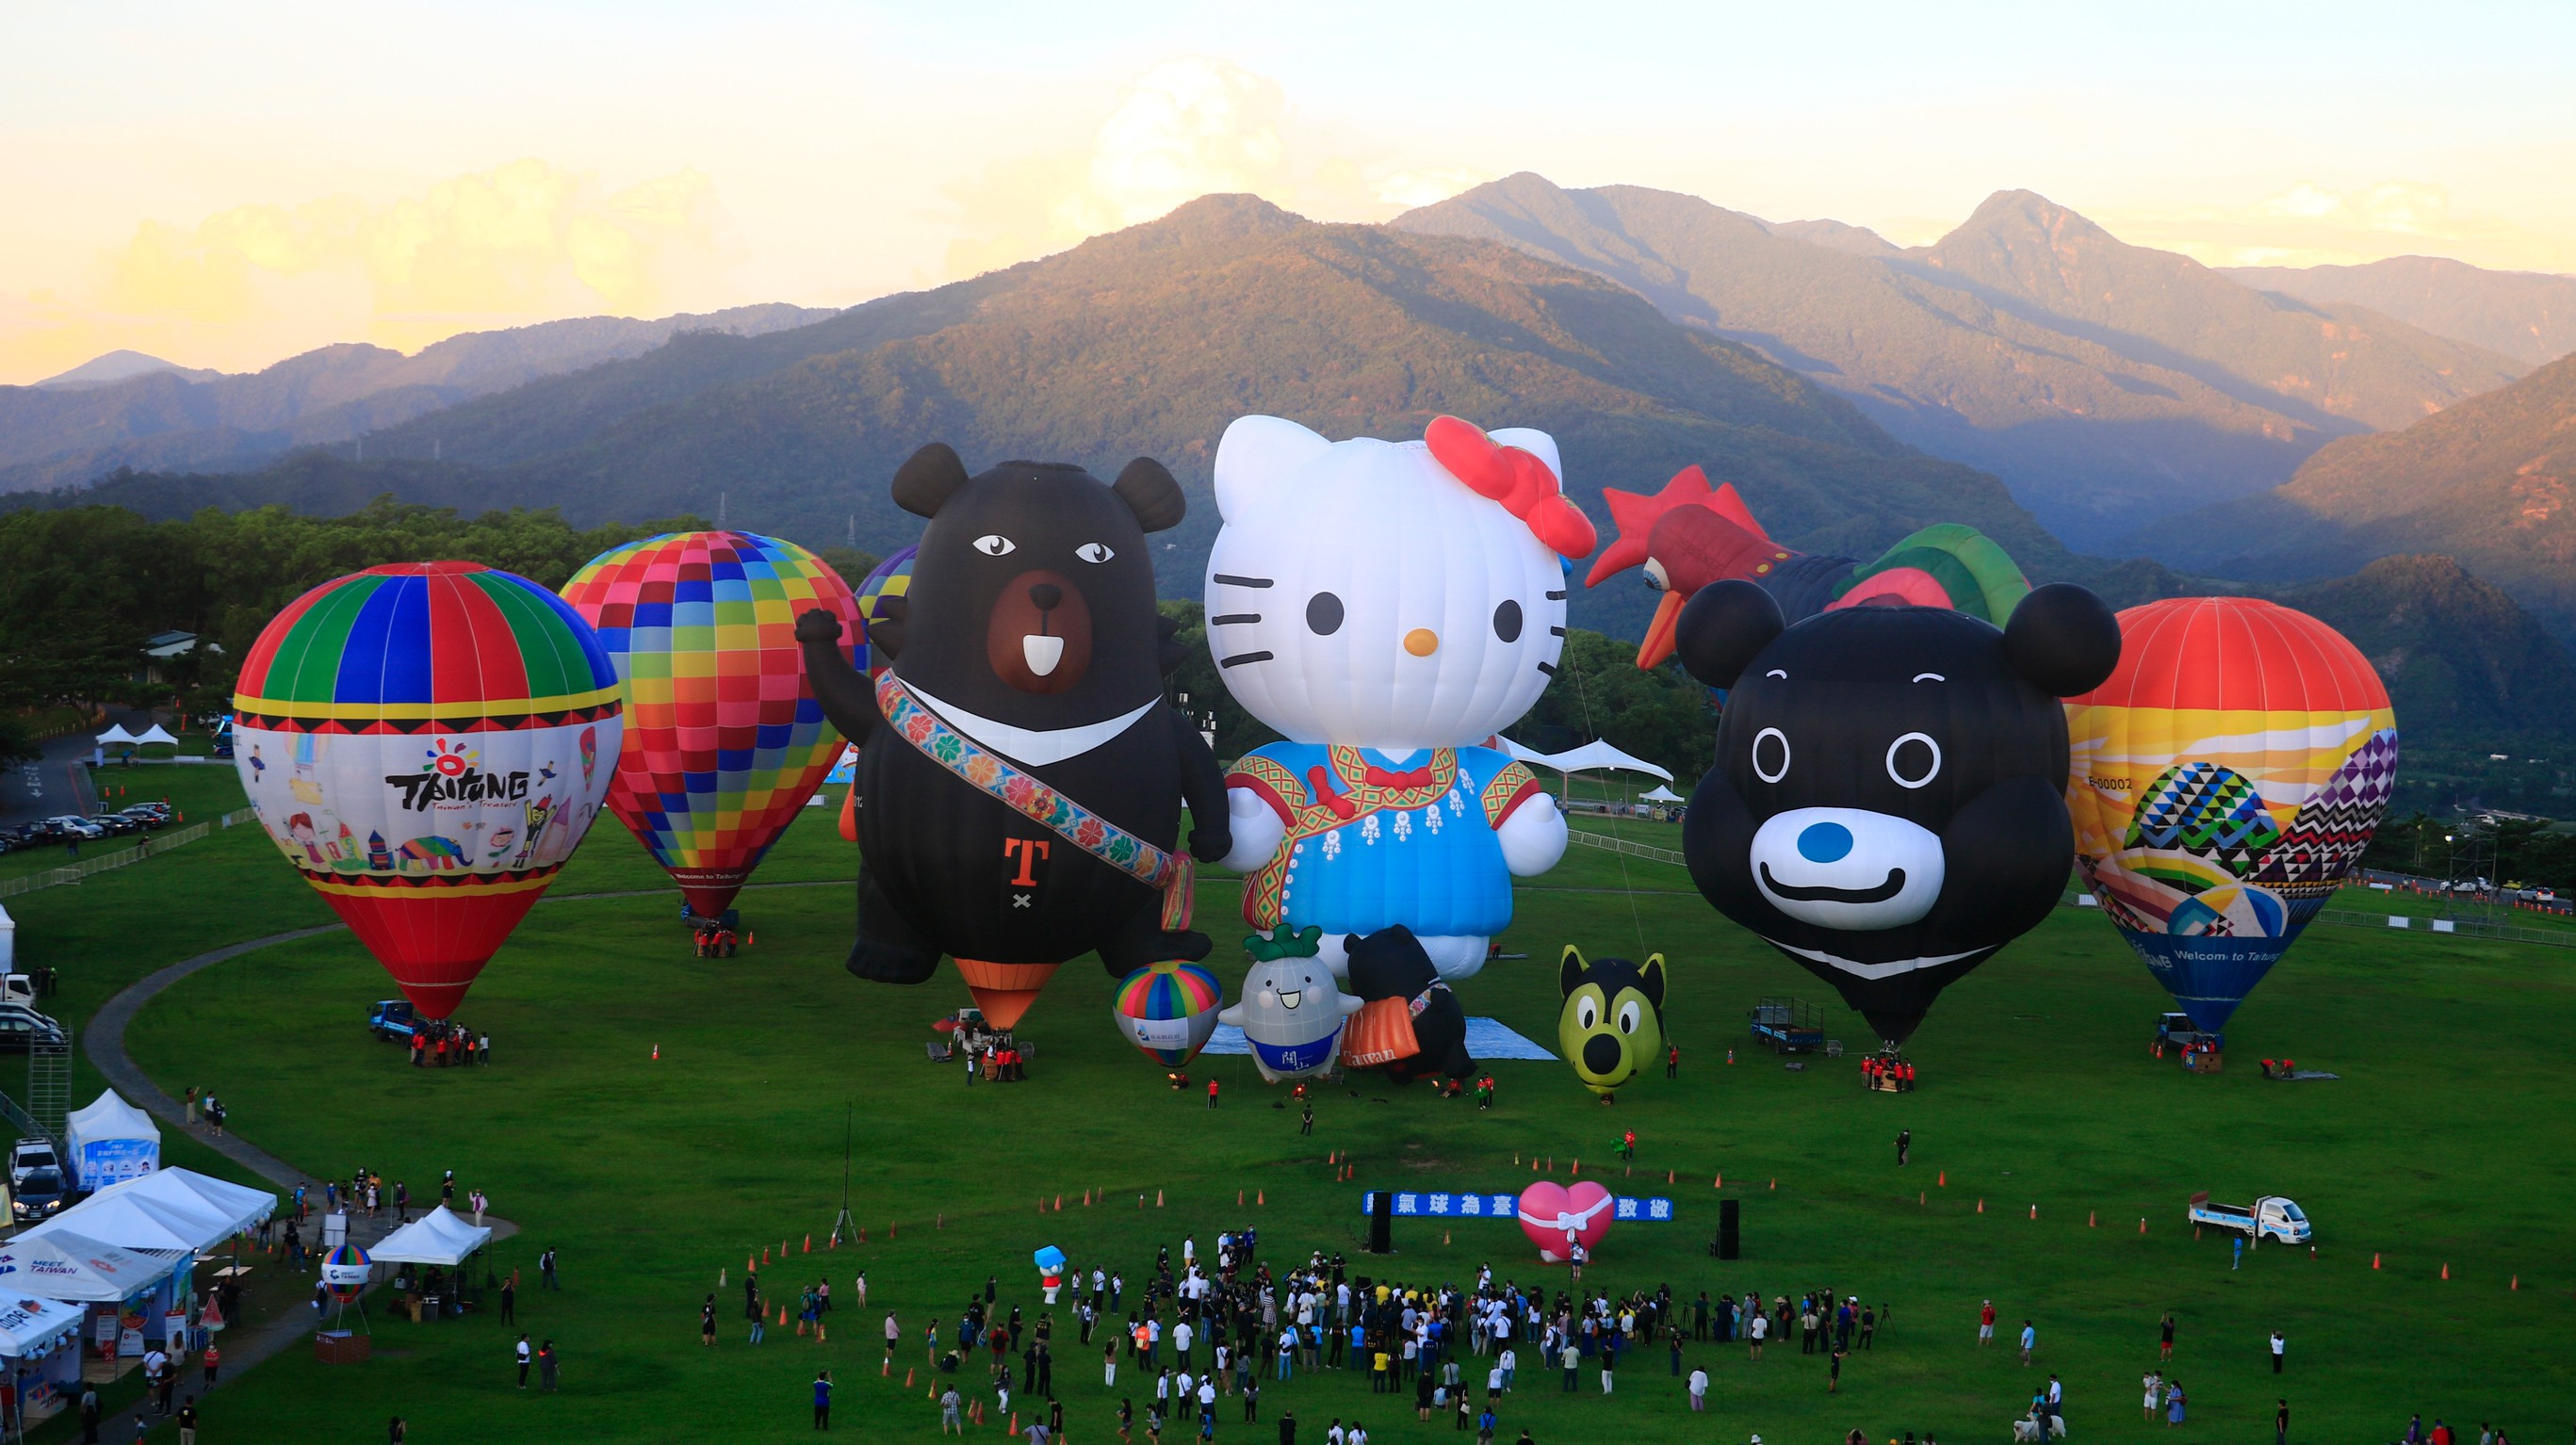 The 2021 Taiwan International Balloon Festival ends in great success